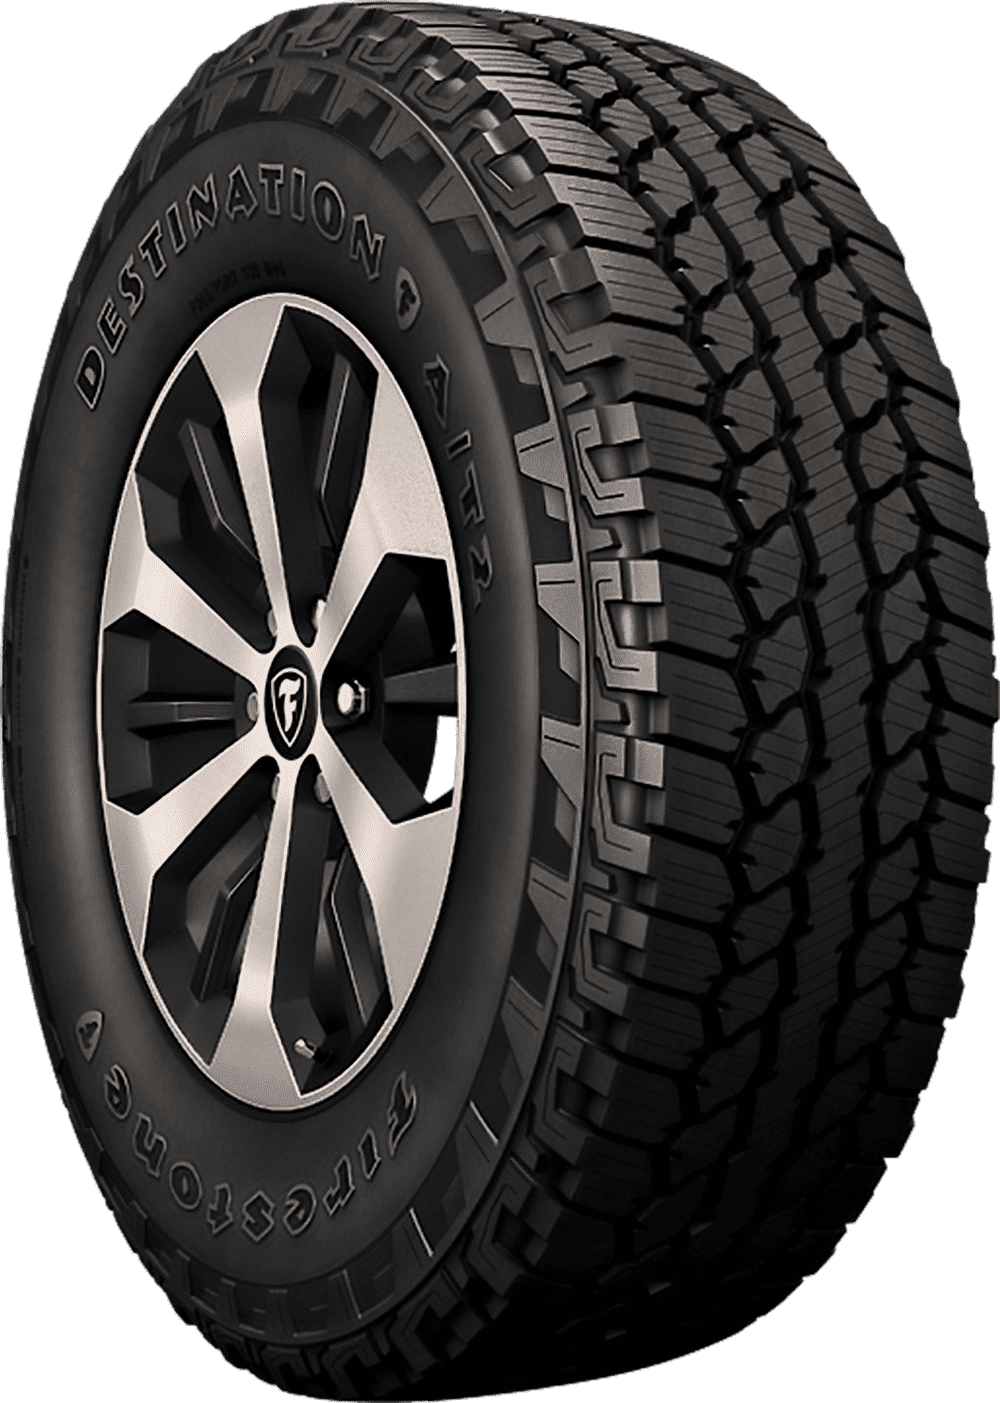 Firestone Destination A/T2 Tire